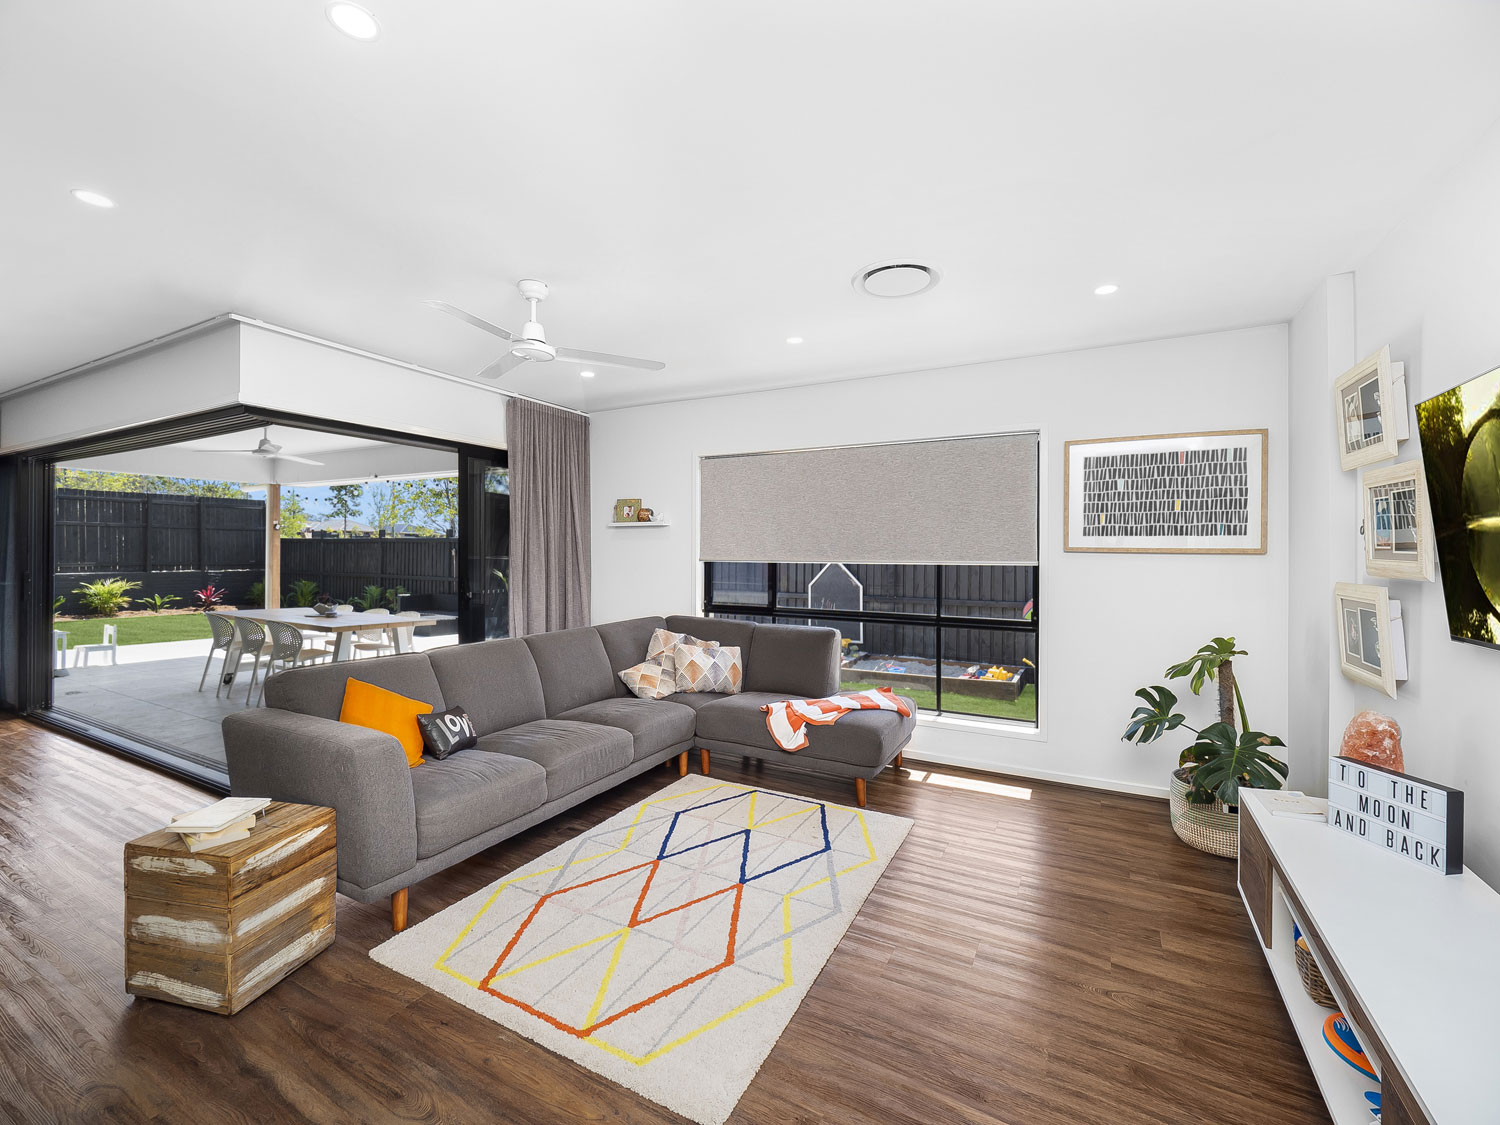 The family room - Real estate photography at Waterford